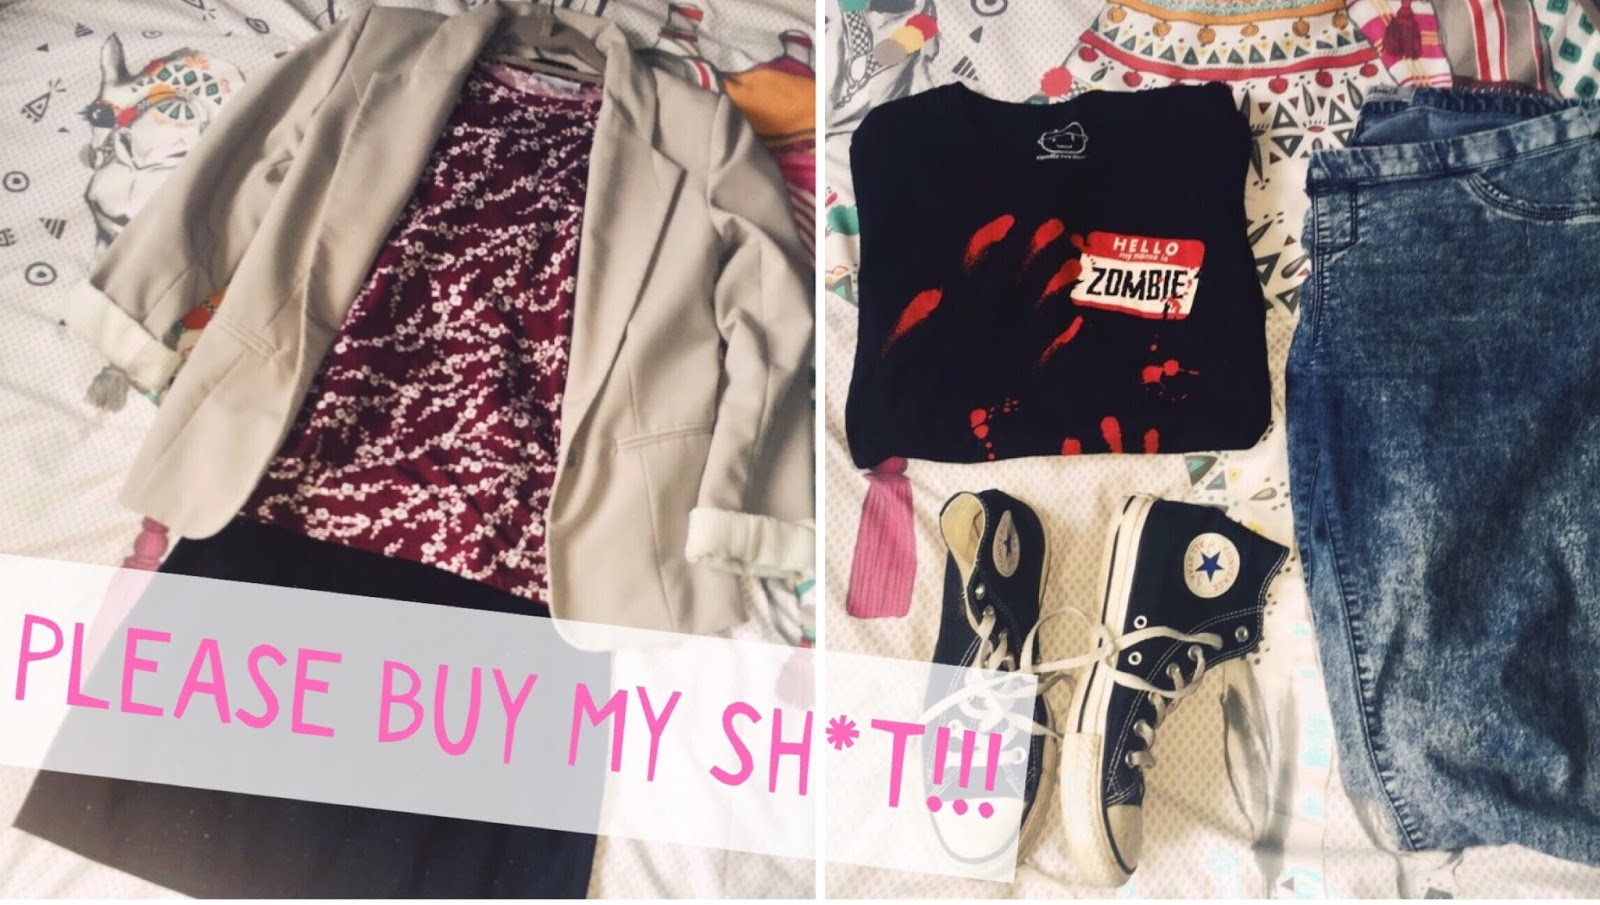 Formidable Joy | Formidable Joy Blog | Bargains | Buy Stuff | Clothes For Sale | Depop